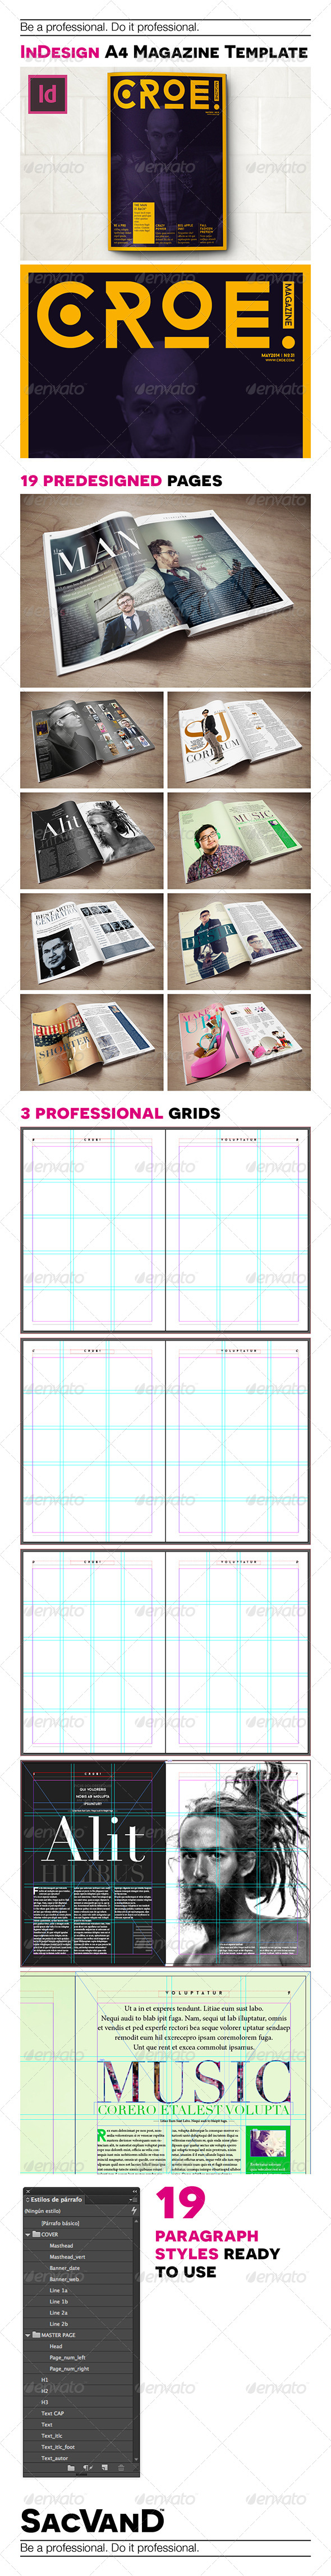 GraphicRiver InDesign A4 magazine template 8001265